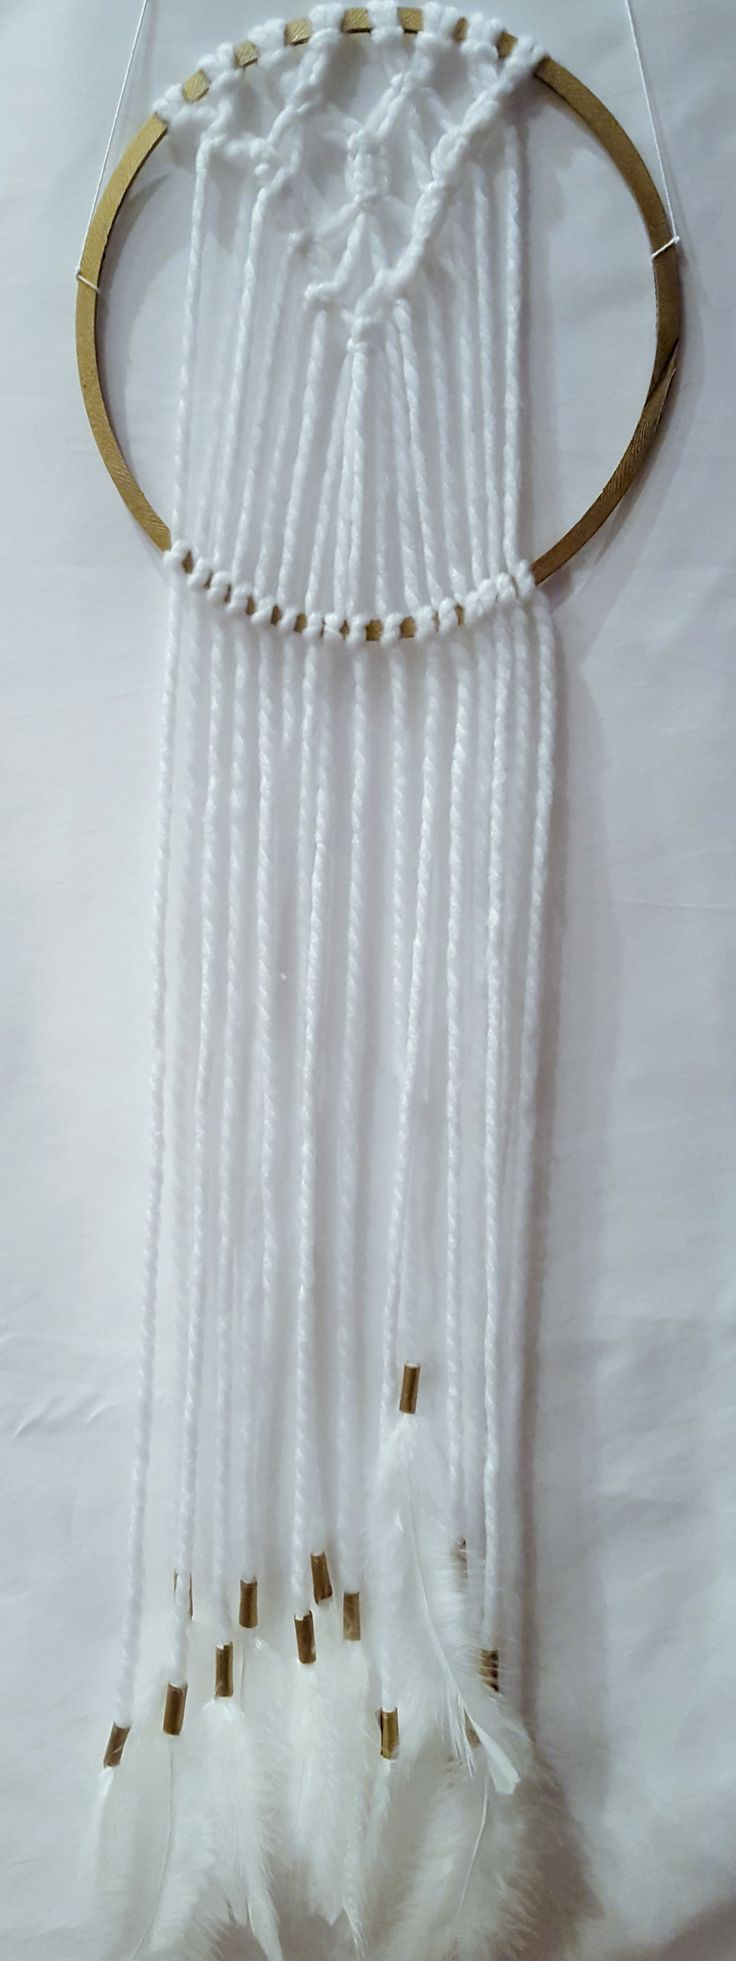 White and gold macrame wall hanging with feathers